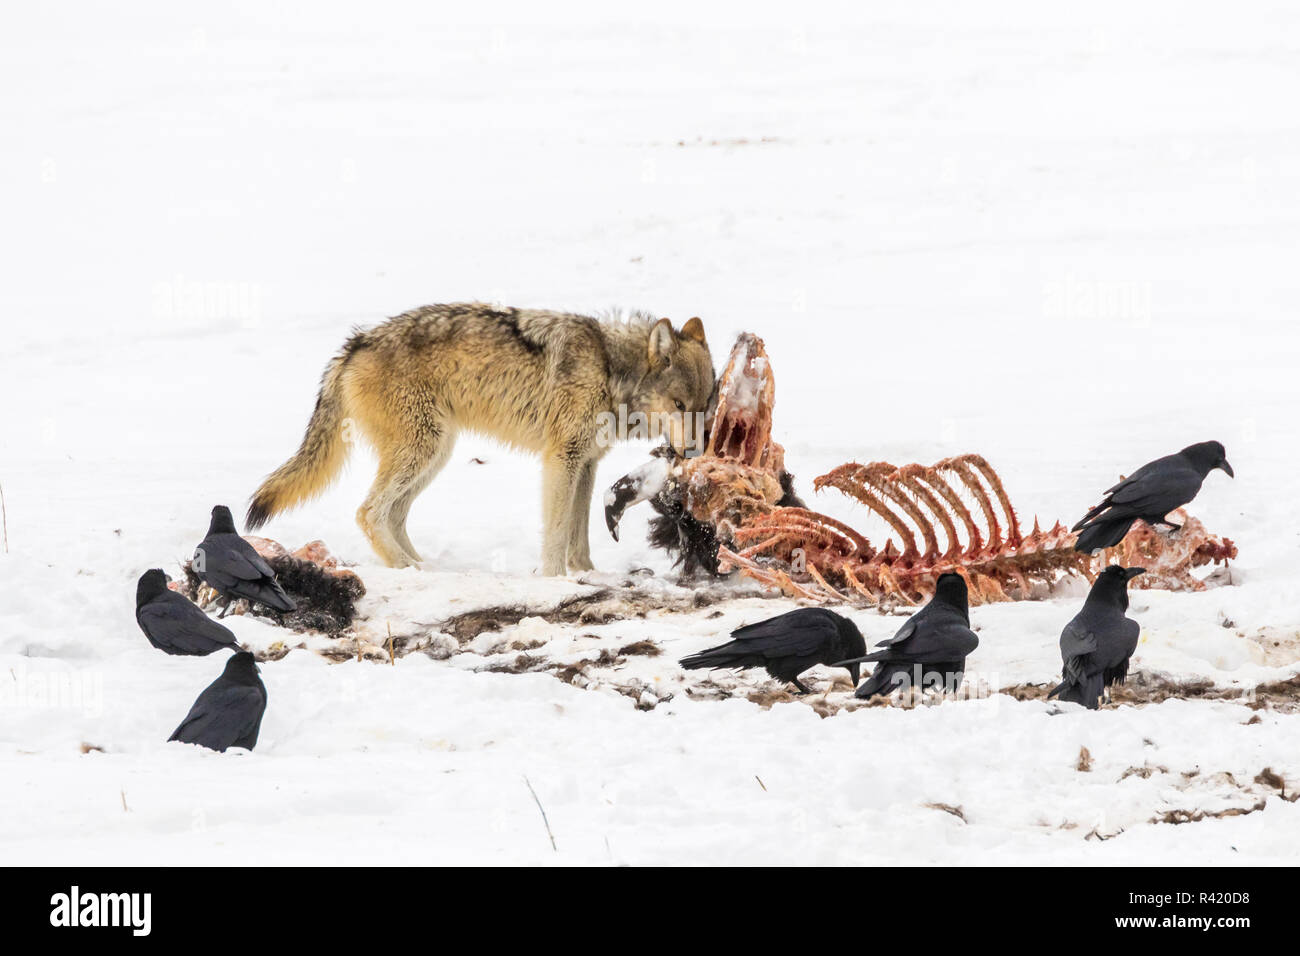 USA, Wyoming, Yellowstone National Park. Wolf feeding on bison carcass. - Stock Image